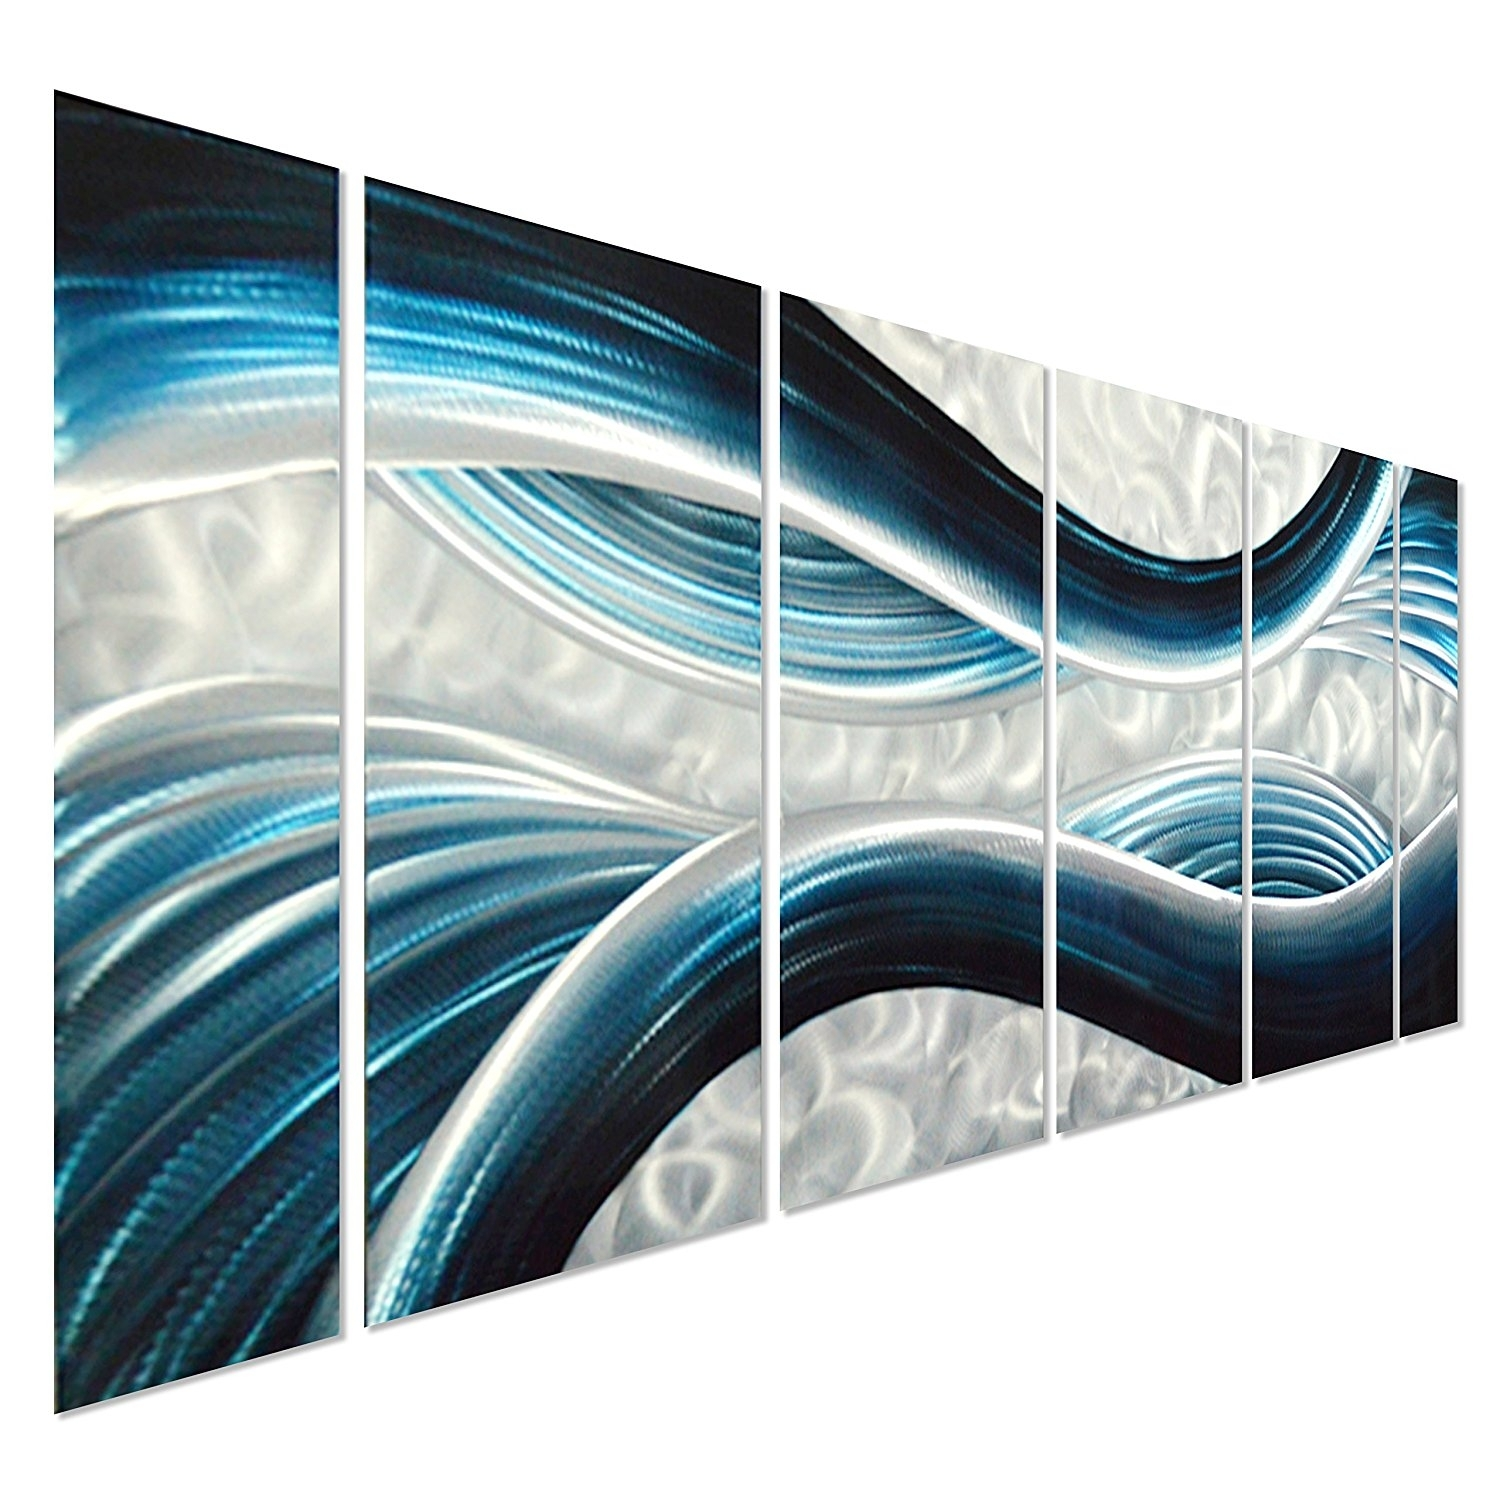 Metal Wall Art Panels Australia A Decal Amazon Blue Desire Large Intended For 2018 Abstract Ocean Wall Art (View 14 of 20)